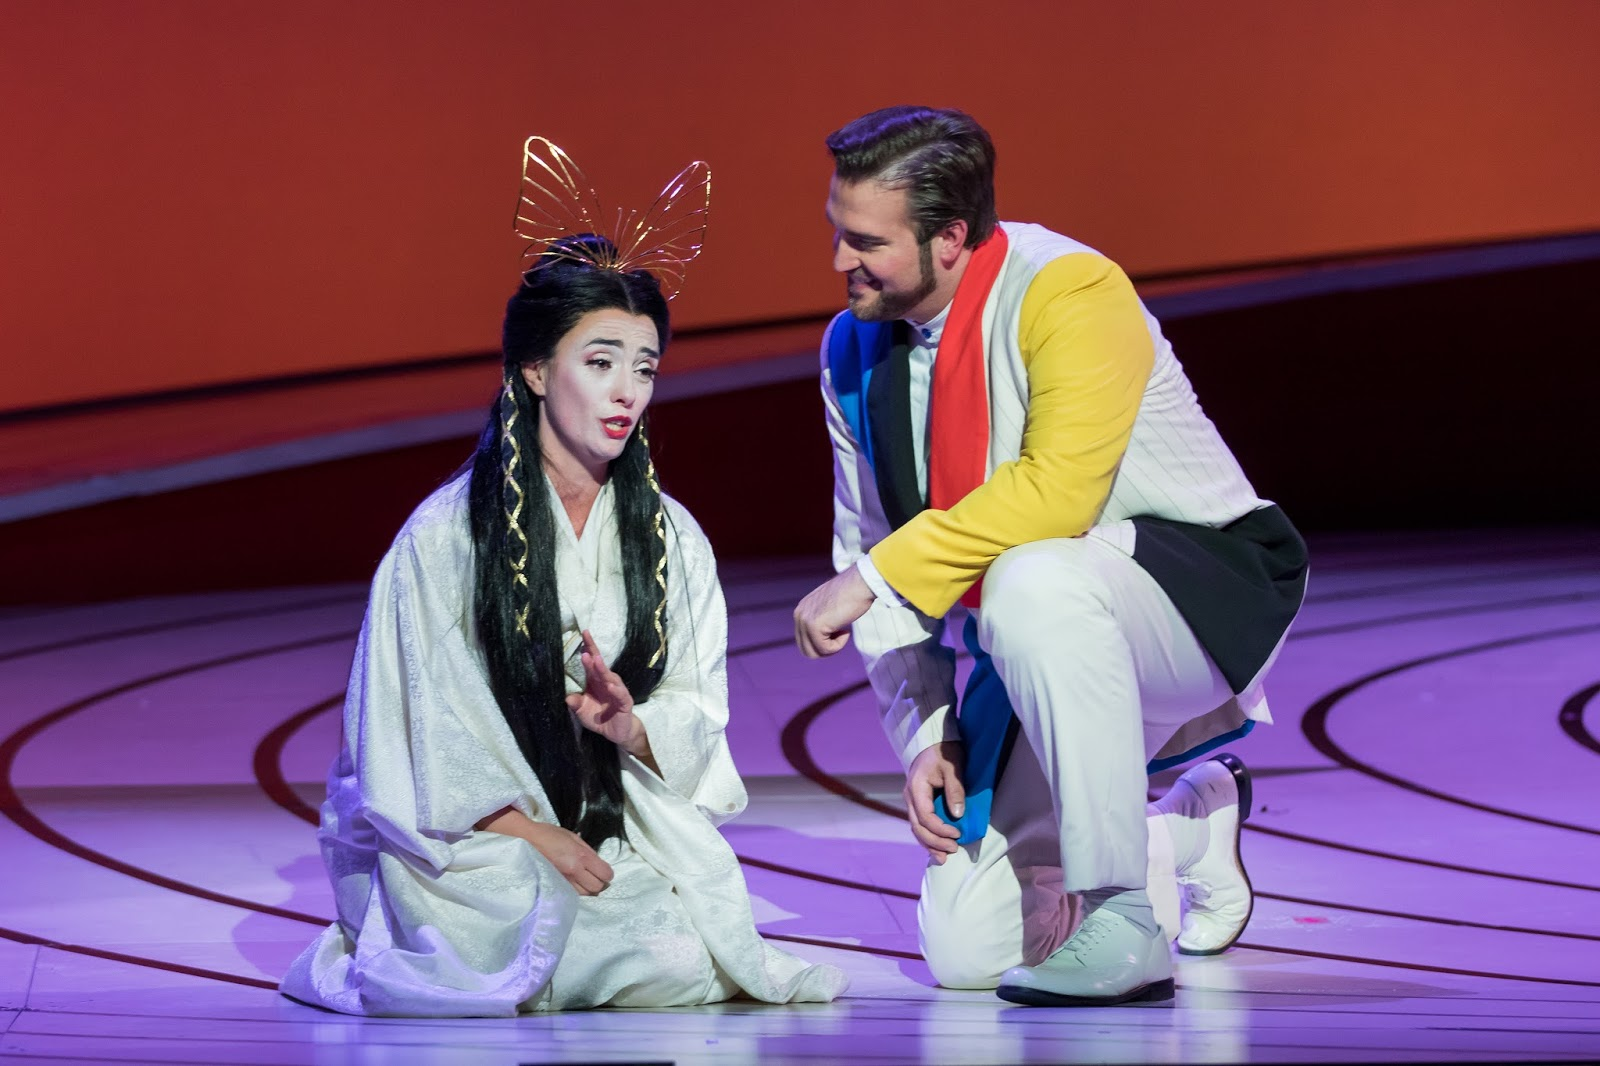 IN REVIEW: Soprano ERMONELA JAHO as Cio-Cio-San (left) and tenor BRIAN JAGDE as Benjamin Franklin Pinkerton (right) in Washington National Opera's production of Giacomo Puccini's MADAMA BUTTERFLY, May 2017 [Photo by Scott Suchman, © by Washington National Opera]